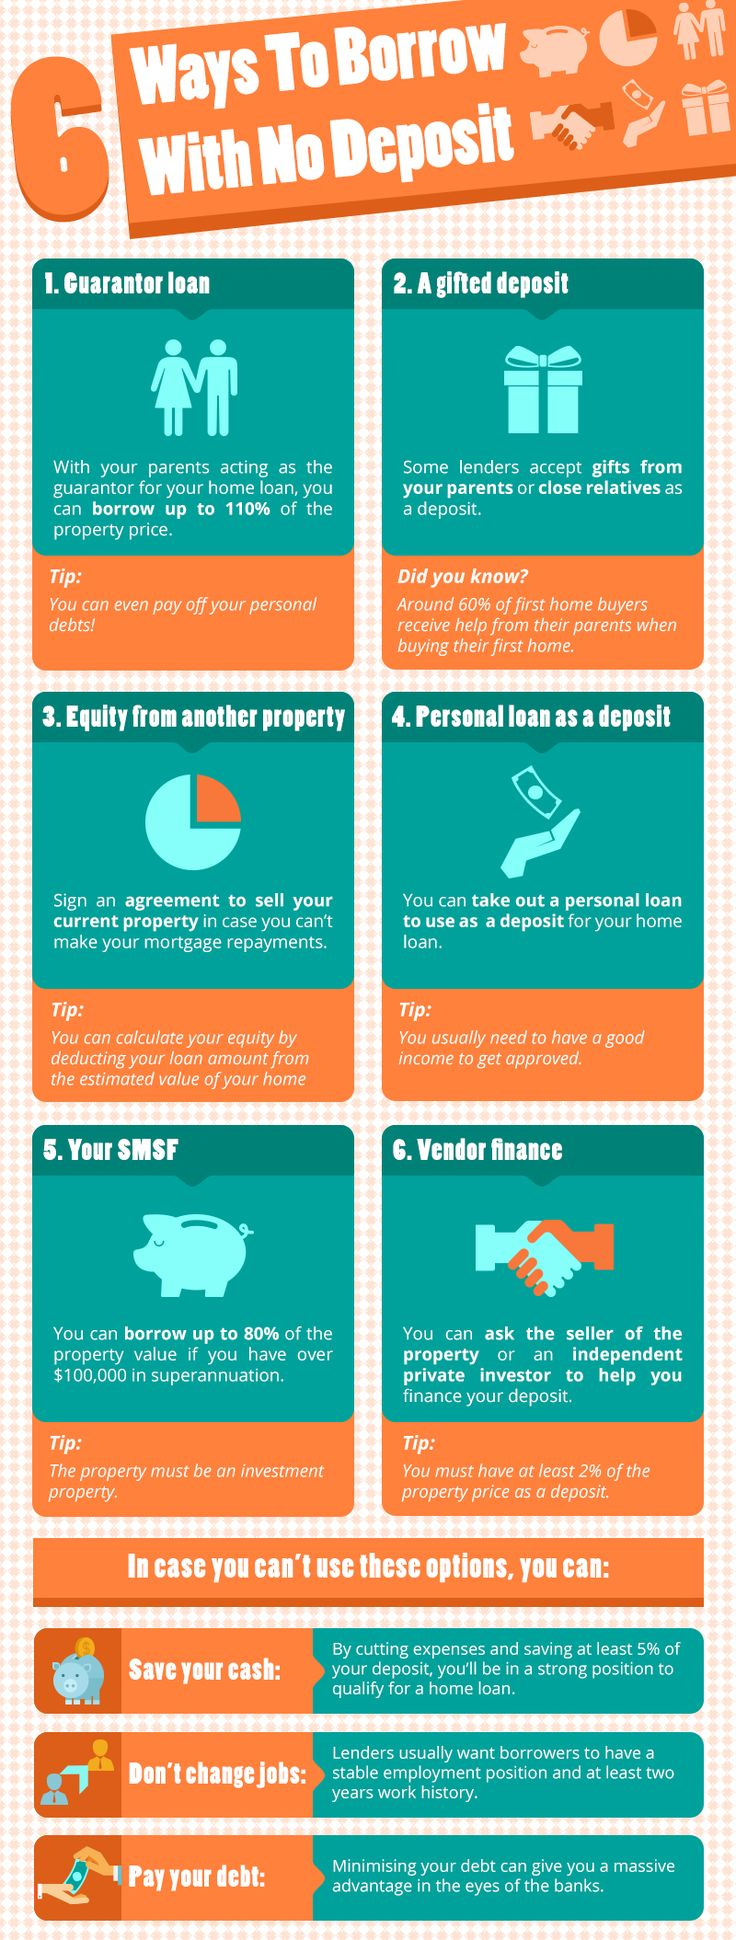 This #infographic shows the 6 ways to qualify for a home loan without a deposit. #tips More info here - https://www.homeloanexperts.com.au/blog/no_deposit/6-ways-borrow-with-no-deposit/